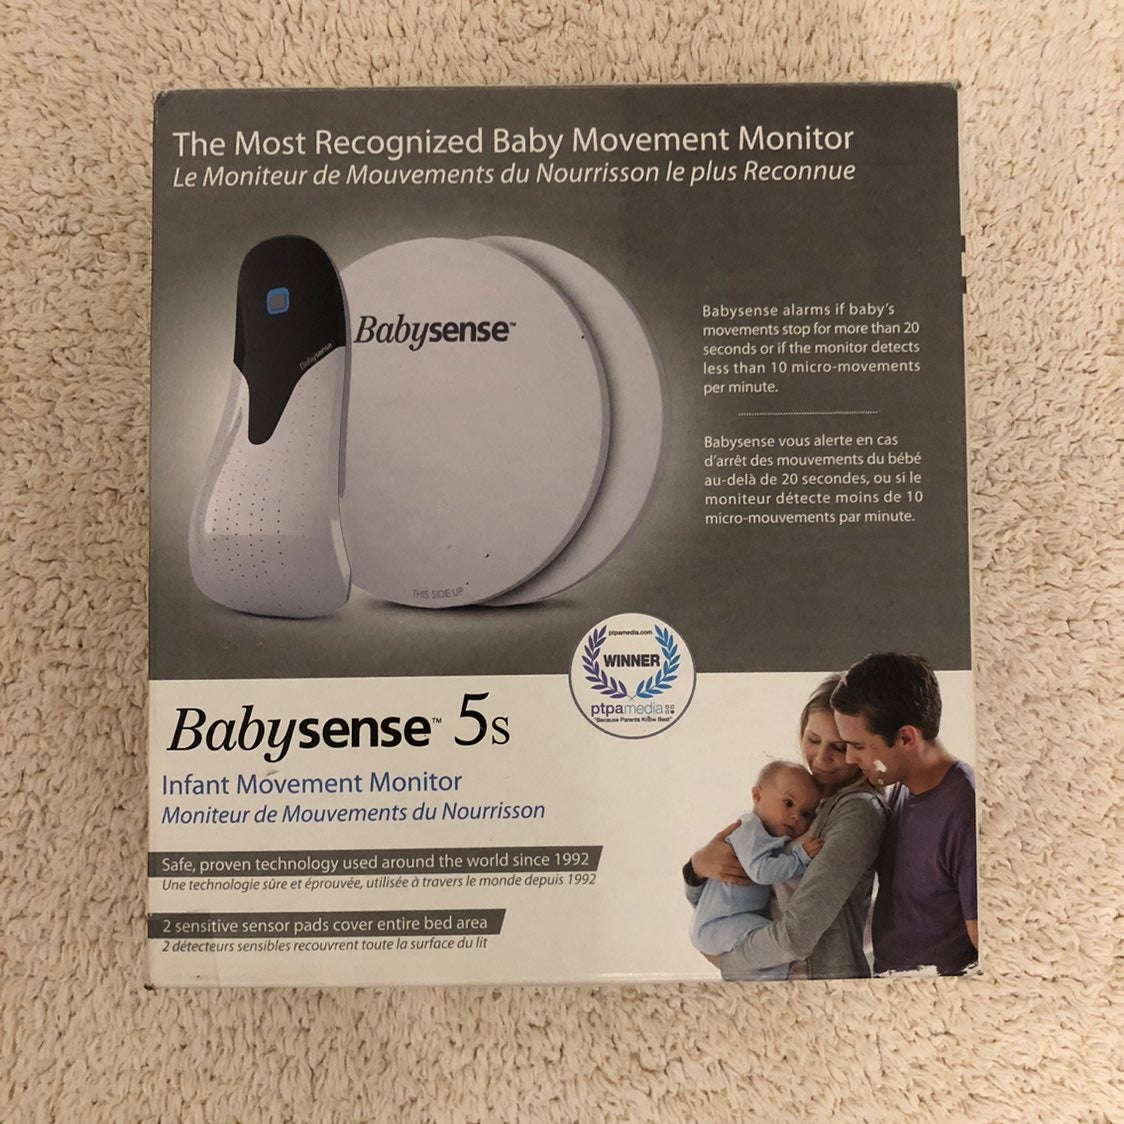 Babysense 5s infant movement monitor